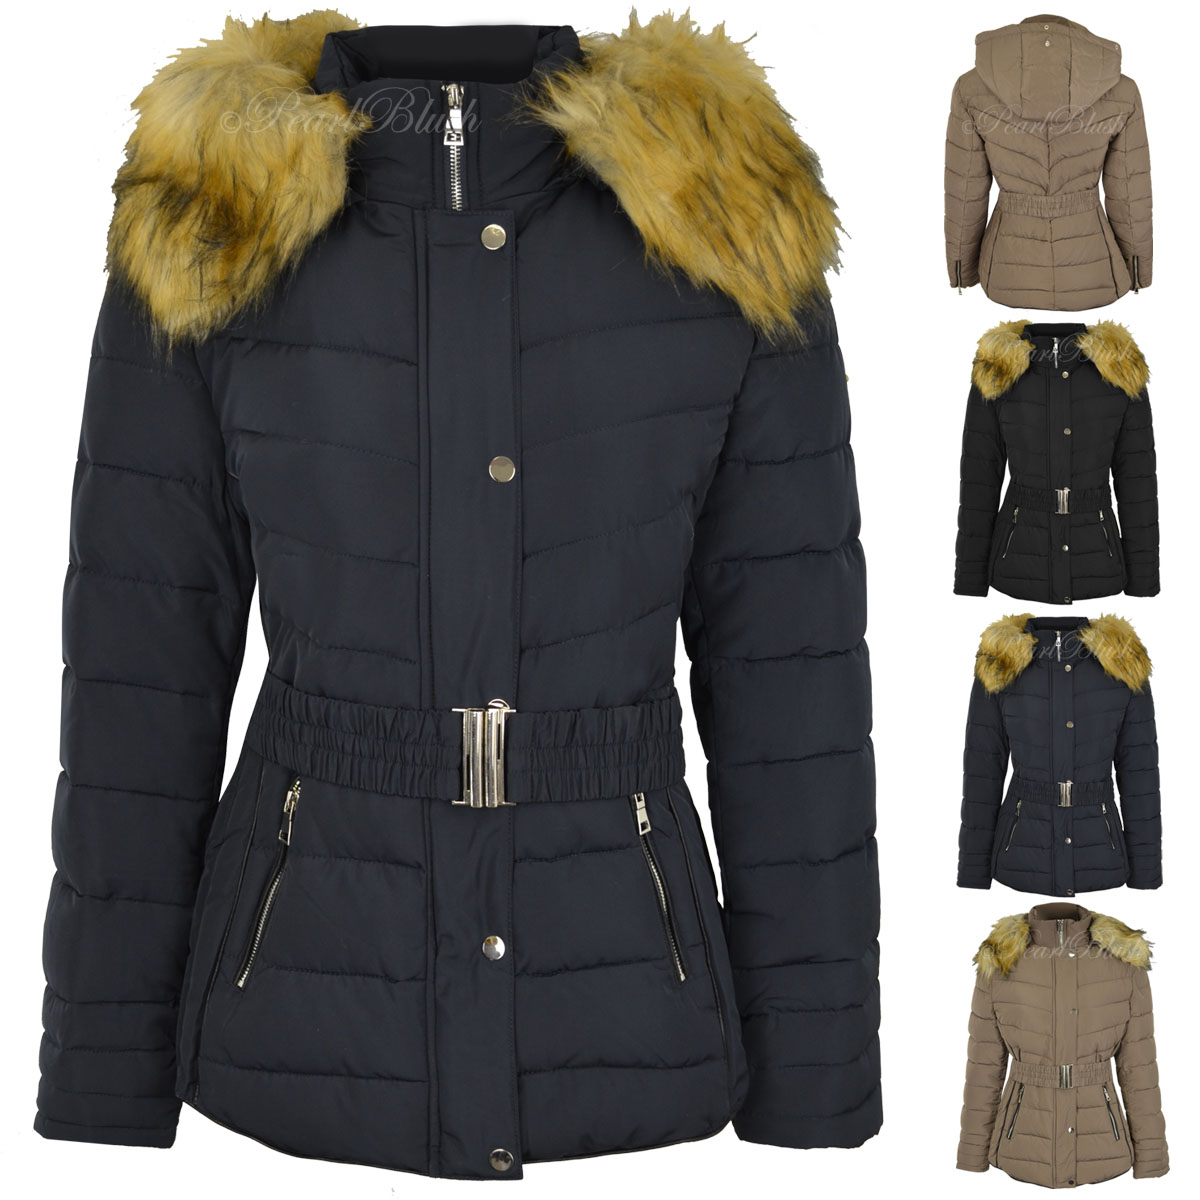 Plus Size Outerwear Essentials: Jackets, Coats, & More! Time to bundle up, keep warm, and get cozy with my plus size jackets, plus size coats, and more! For the fall, autumn, and spring, my trendy fashion jackets are the perfect outerwear for work and play.